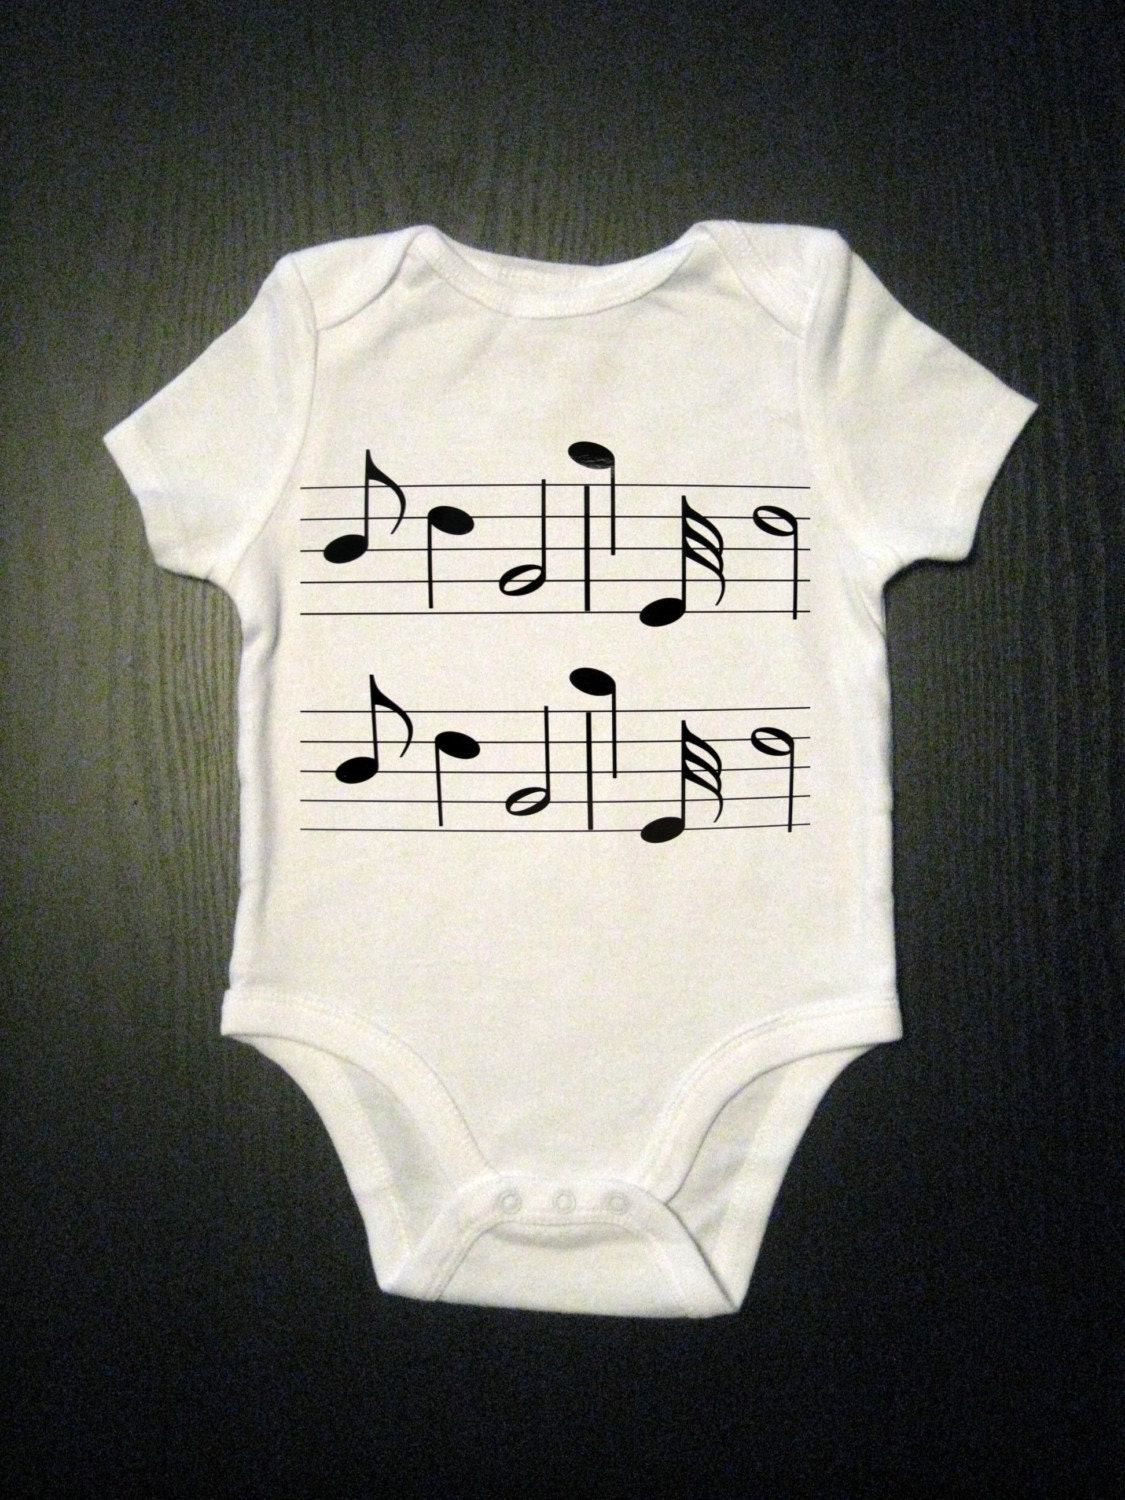 Items Similar To Music Notes Baby Onesie Kids Clothes